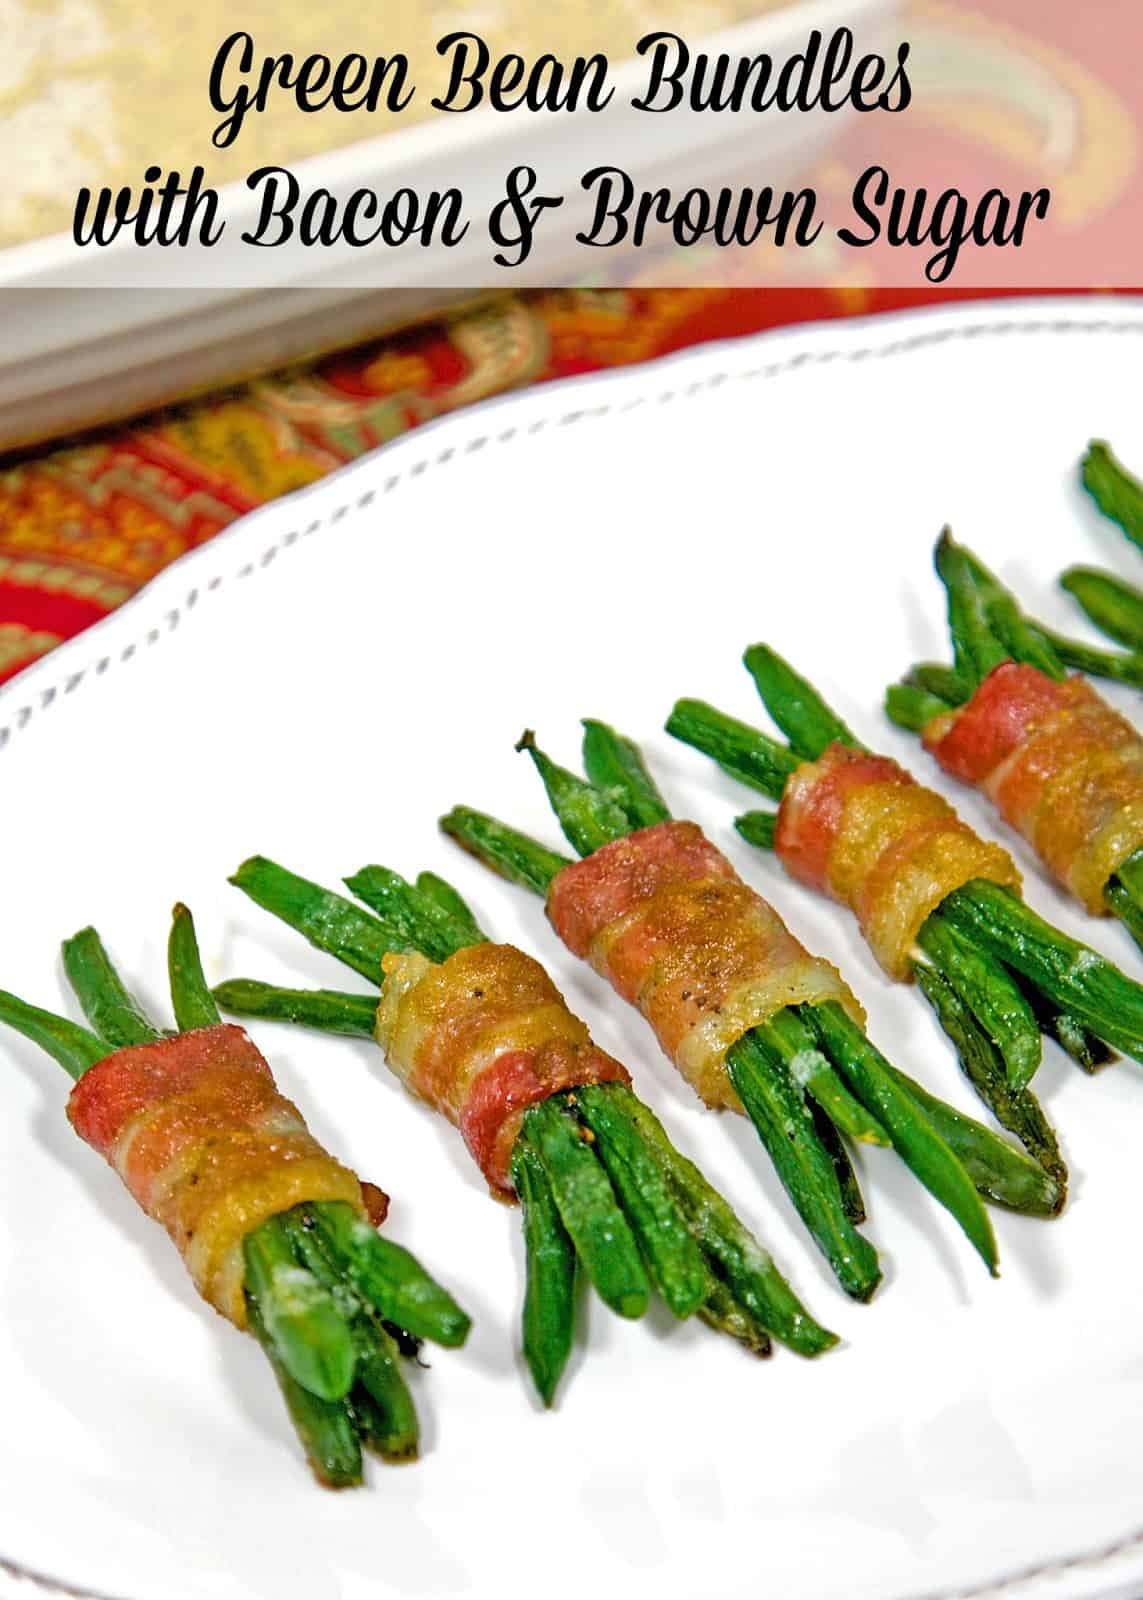 Green Bean Bundles with Bacon and Brown Sugar - simple side dish with tons of great flavors! Can assemble ahead of time and refrigerate until ready to bake.